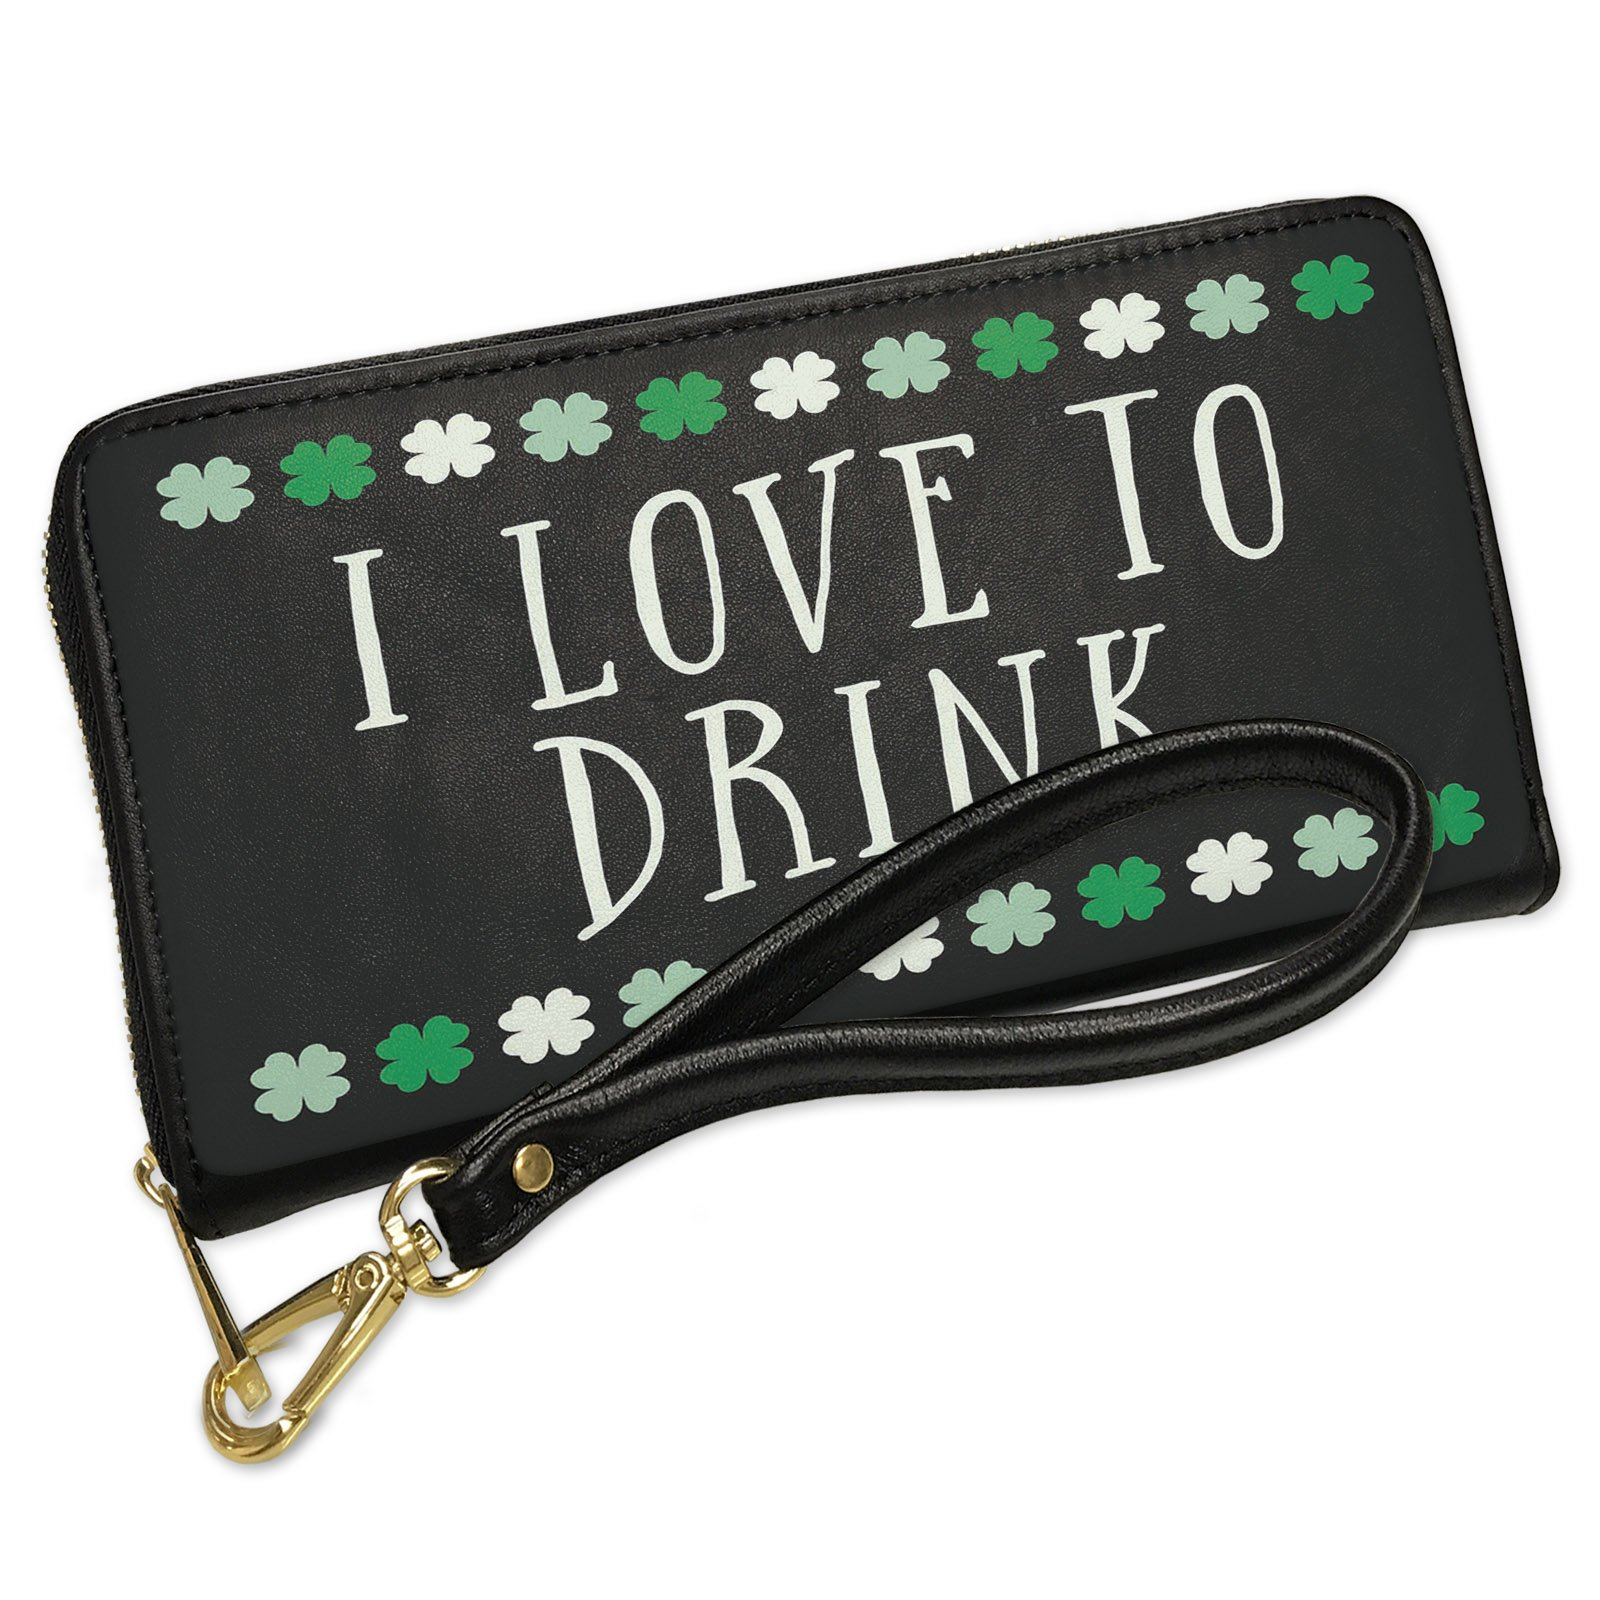 Wallet Clutch I Love To Drink St. Patrick's Day Cute Shamrocks with Removable Wristlet Strap Neonblond